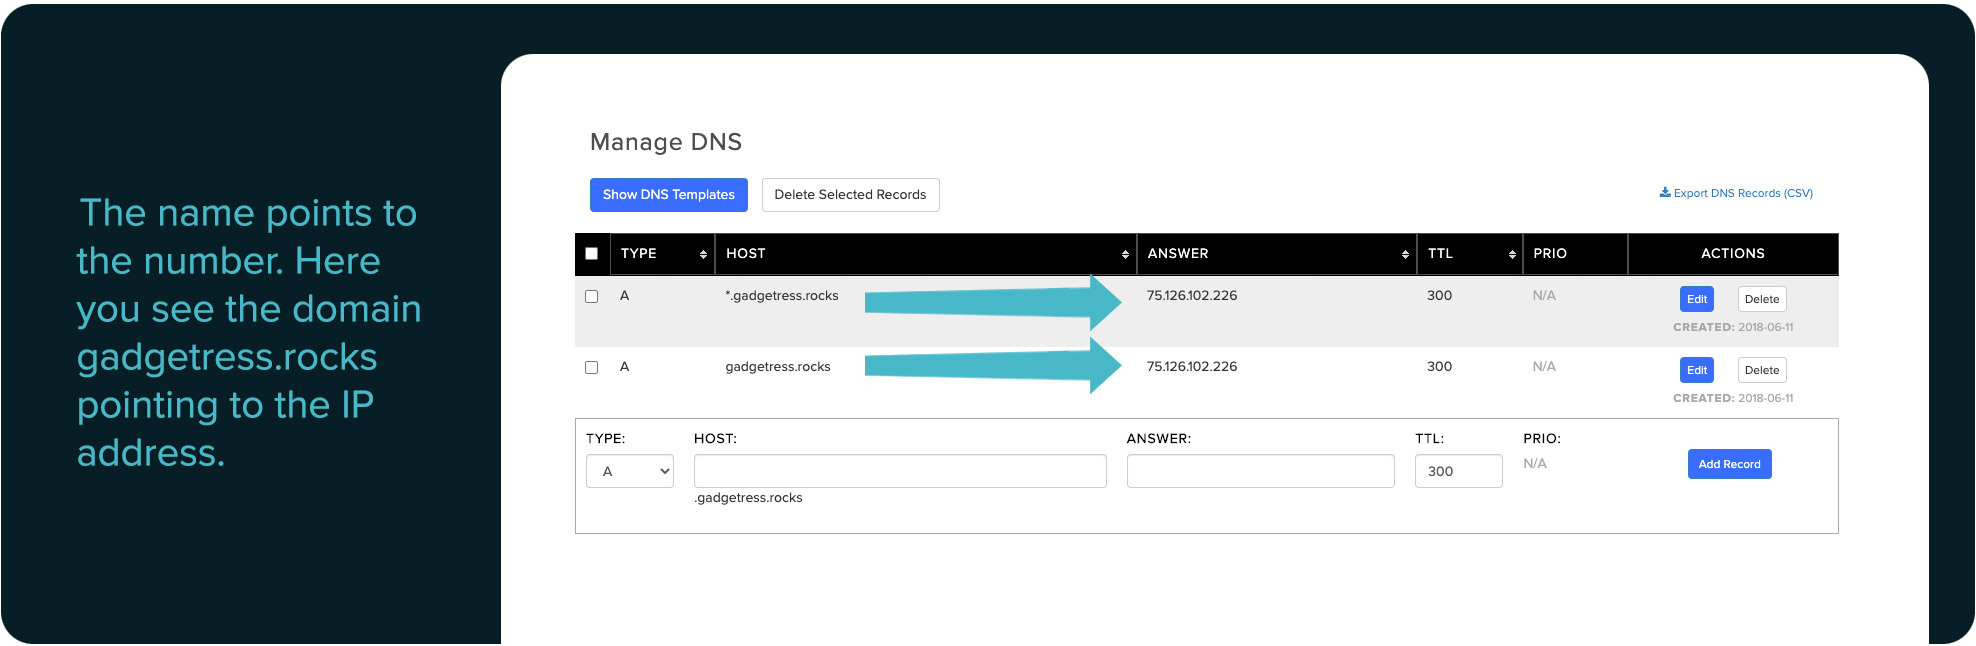 DNS management A records example